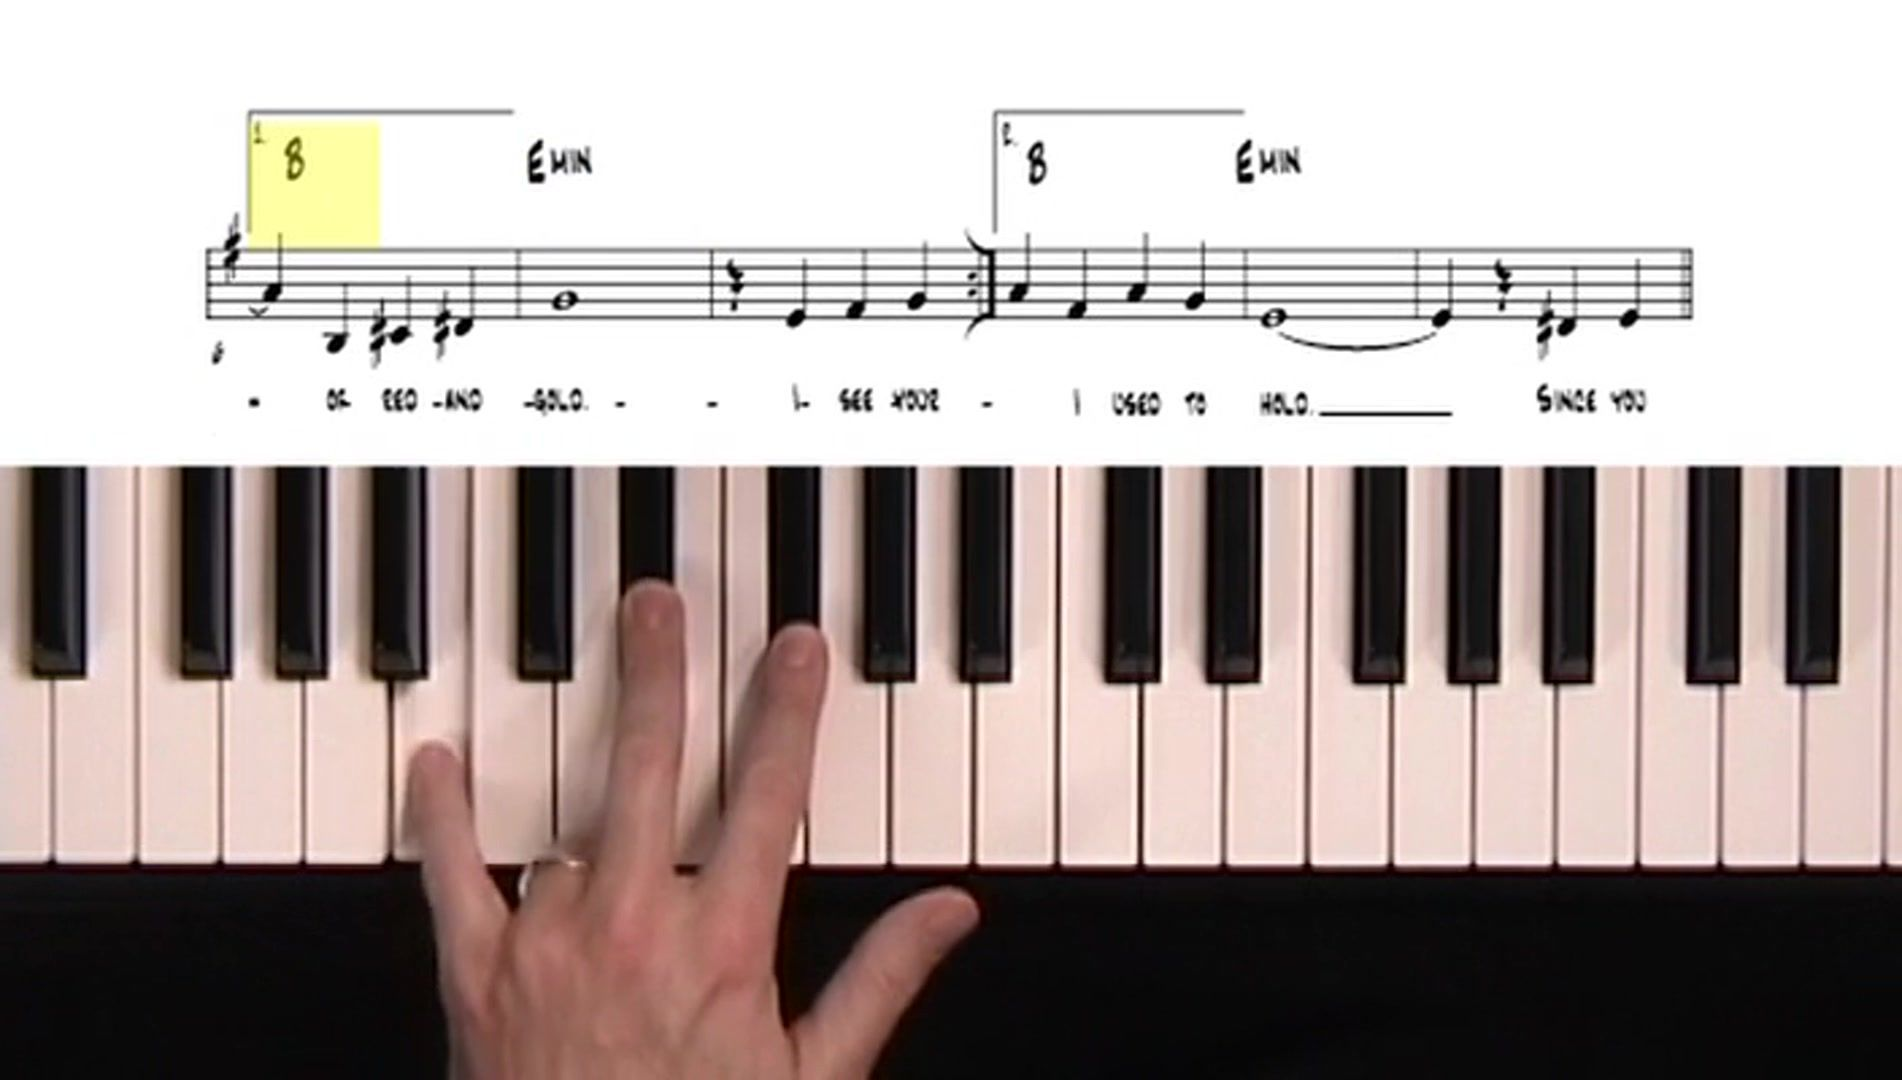 The piano guy video on demand store chapter 3 basic chords chapter 3 basic chords hexwebz Gallery